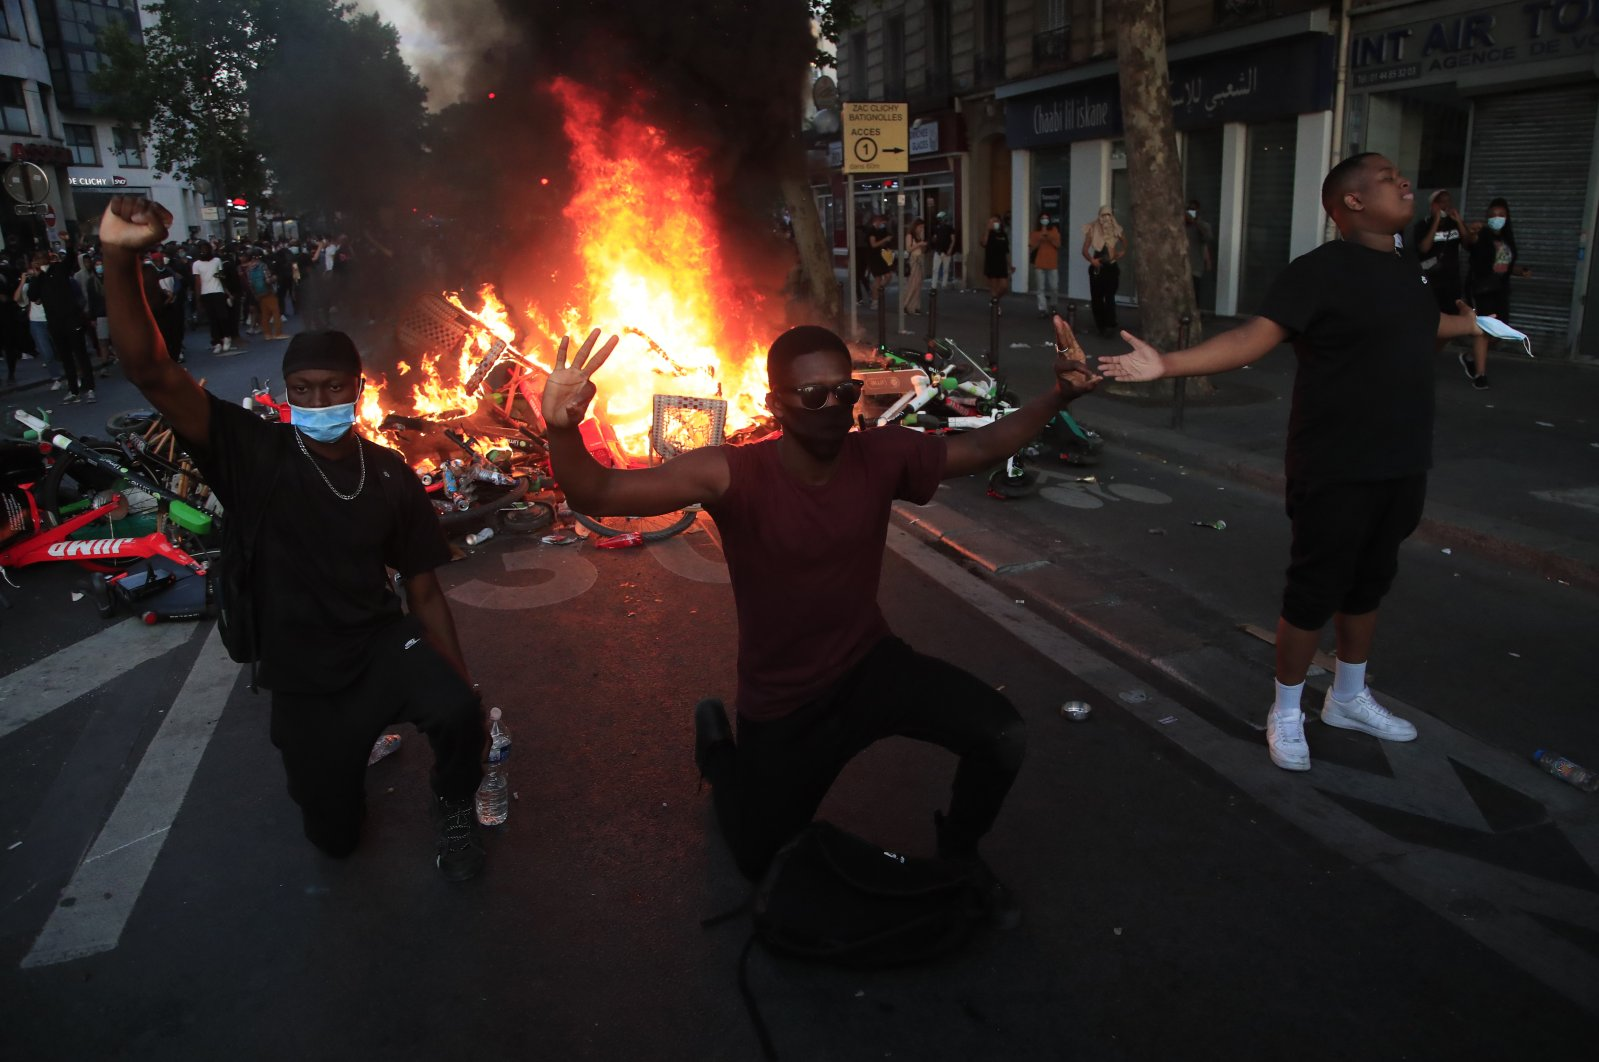 Protesters kneel and react by a burning barricade during a demonstration in Paris, June 2, 2020. (AP Photo)